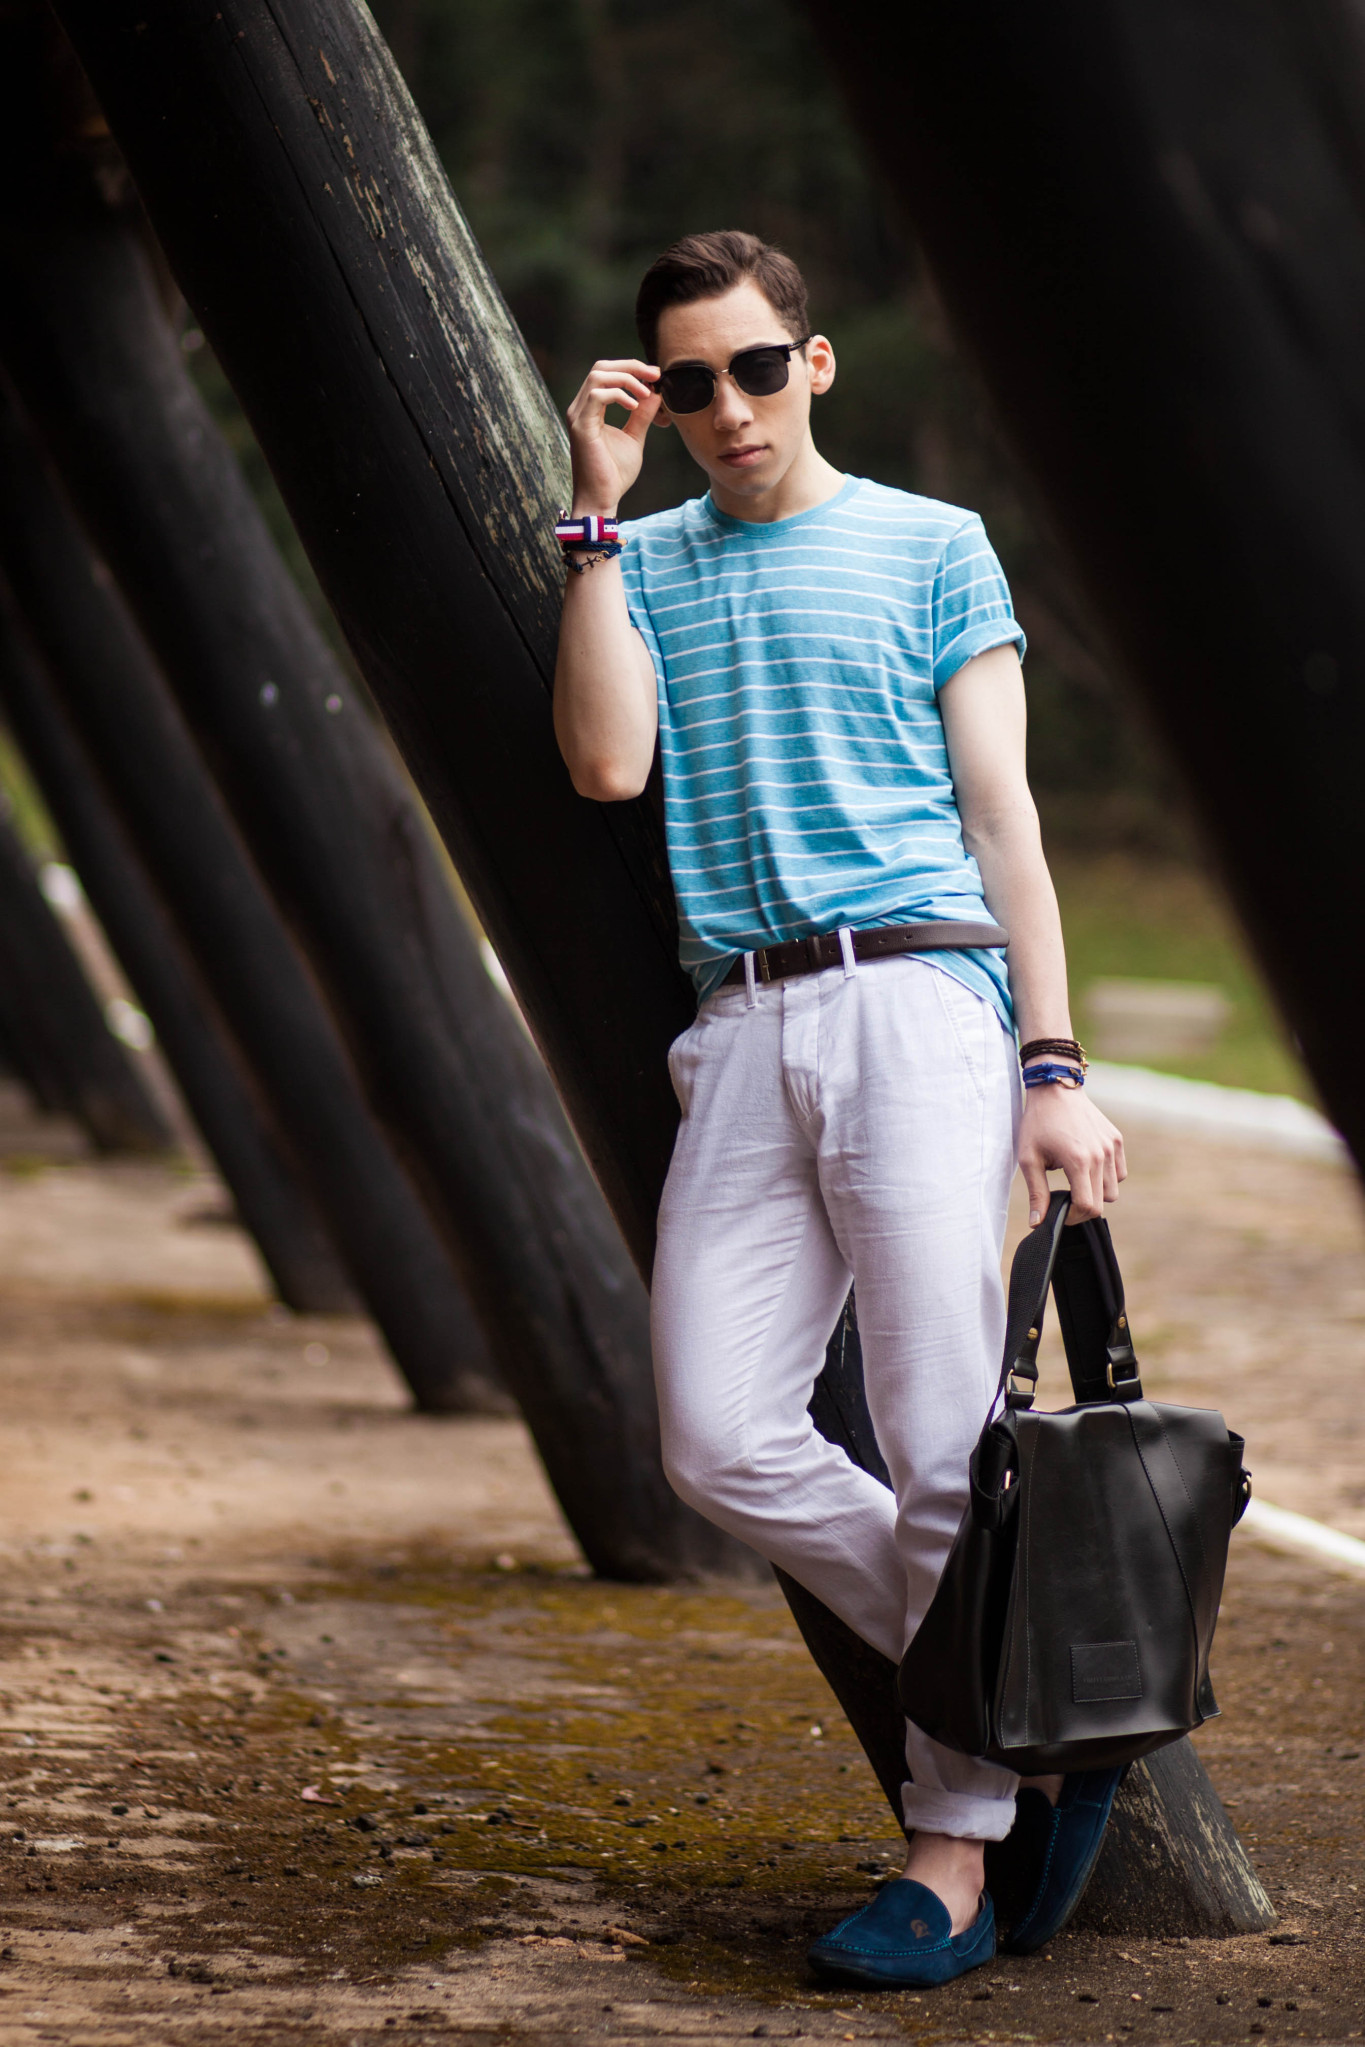 Black t shirt light blue jeans -  Black Sunglasses Men S Light Blue Horizontal Striped Crew Neck T Shirt White Chinos Navy